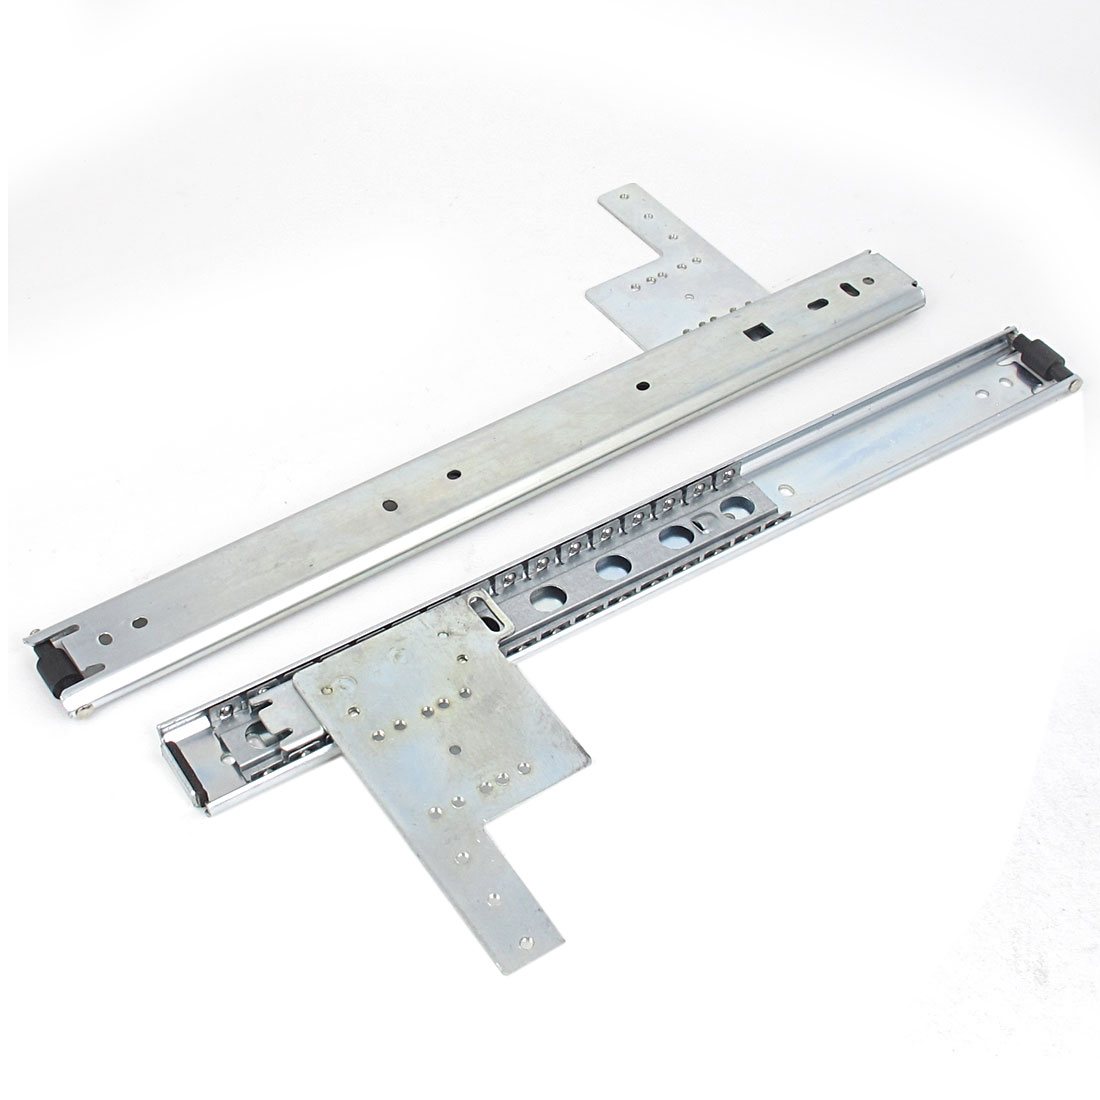 "2 Pcs 14"" Length Metal Ball Bearing Drawer Cabinets Slides Sliding Rail Track Hardware Tool"